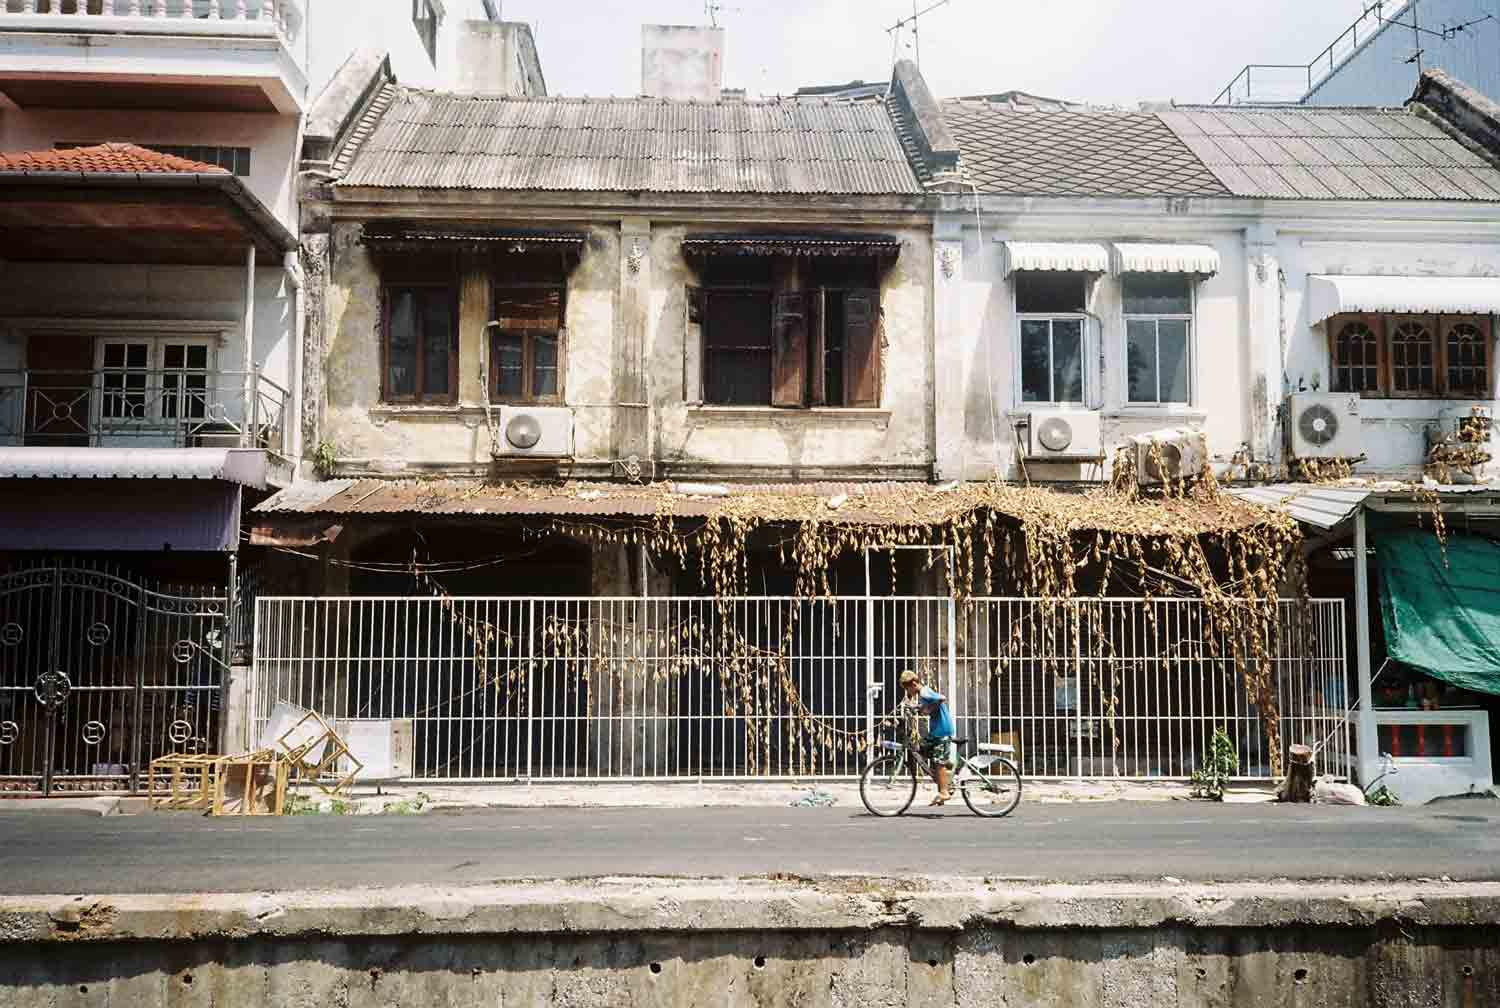 Boy on a bicycle in Bangkok in front of houses